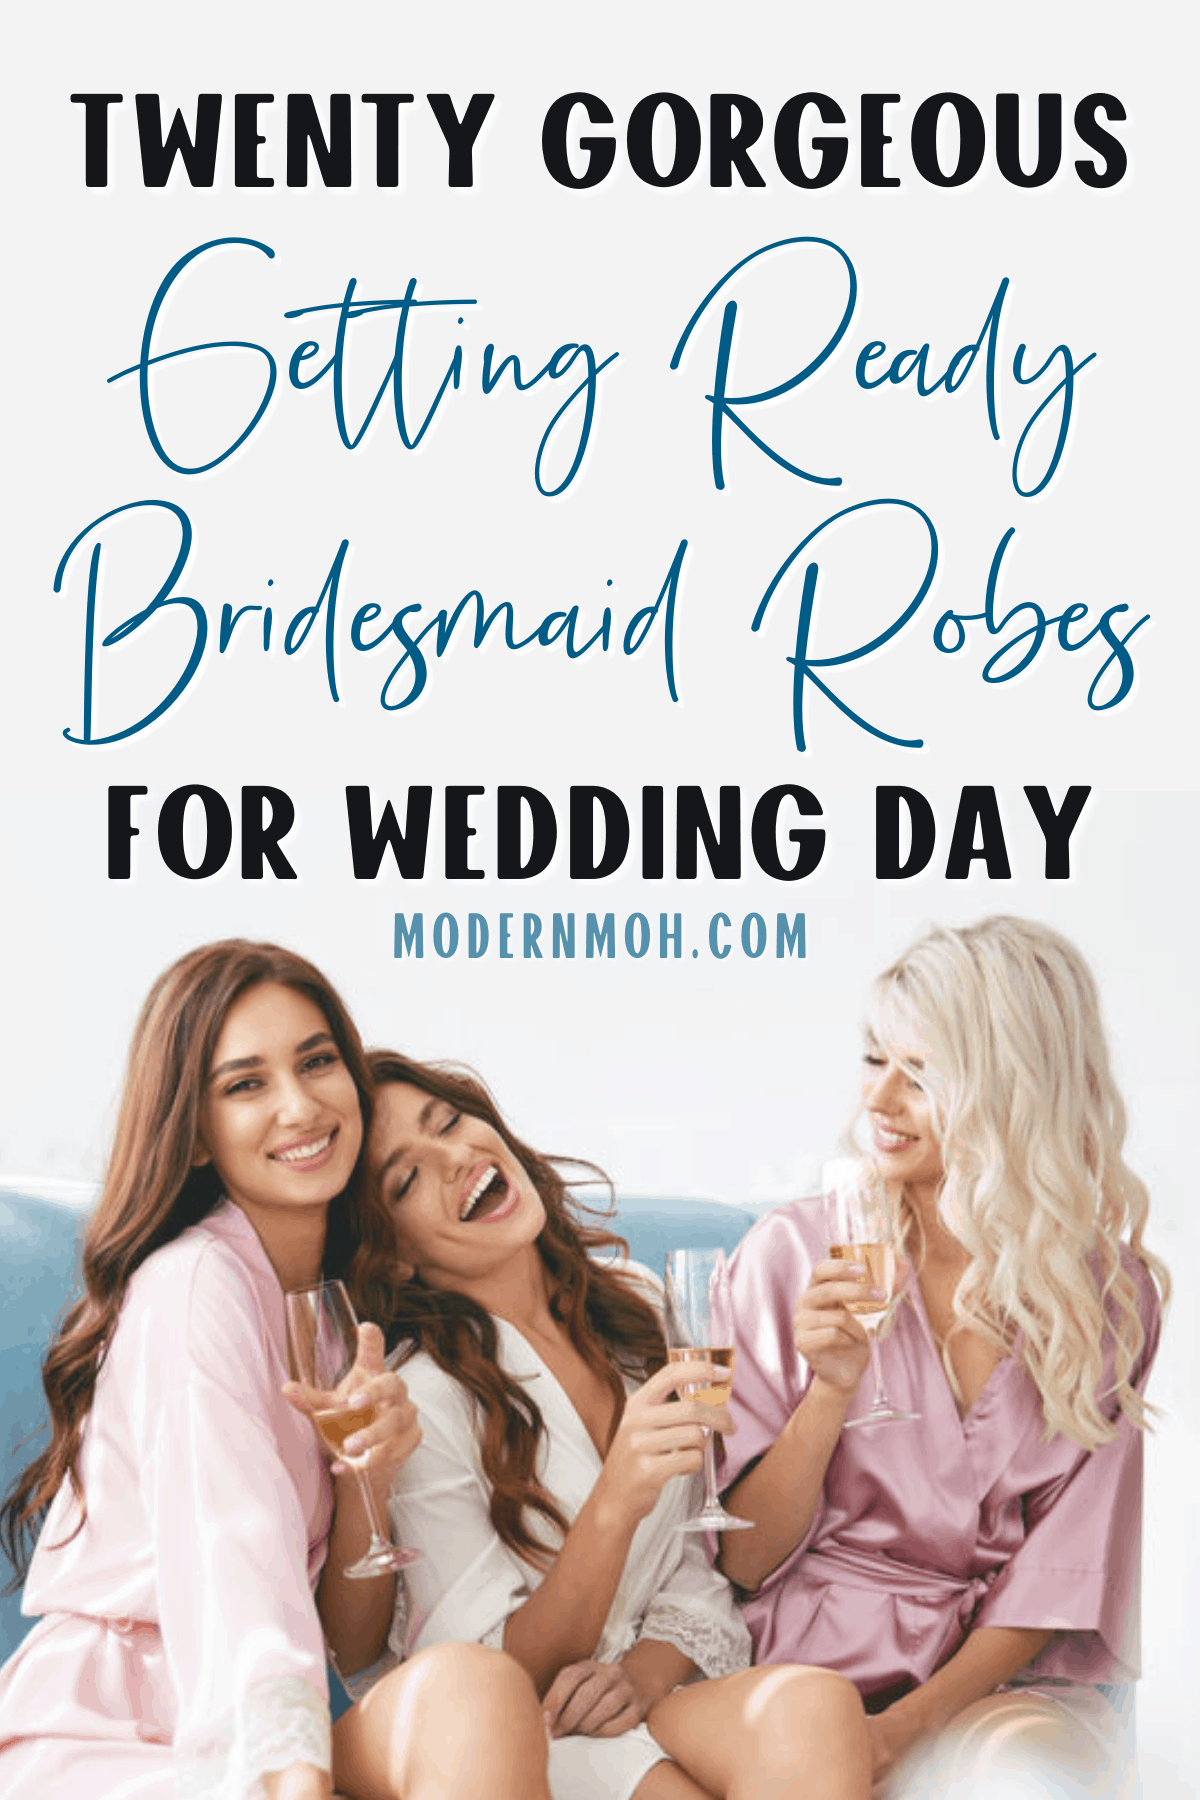 20 Bridesmaid Robes for a Picture-Perfect Wedding Morning